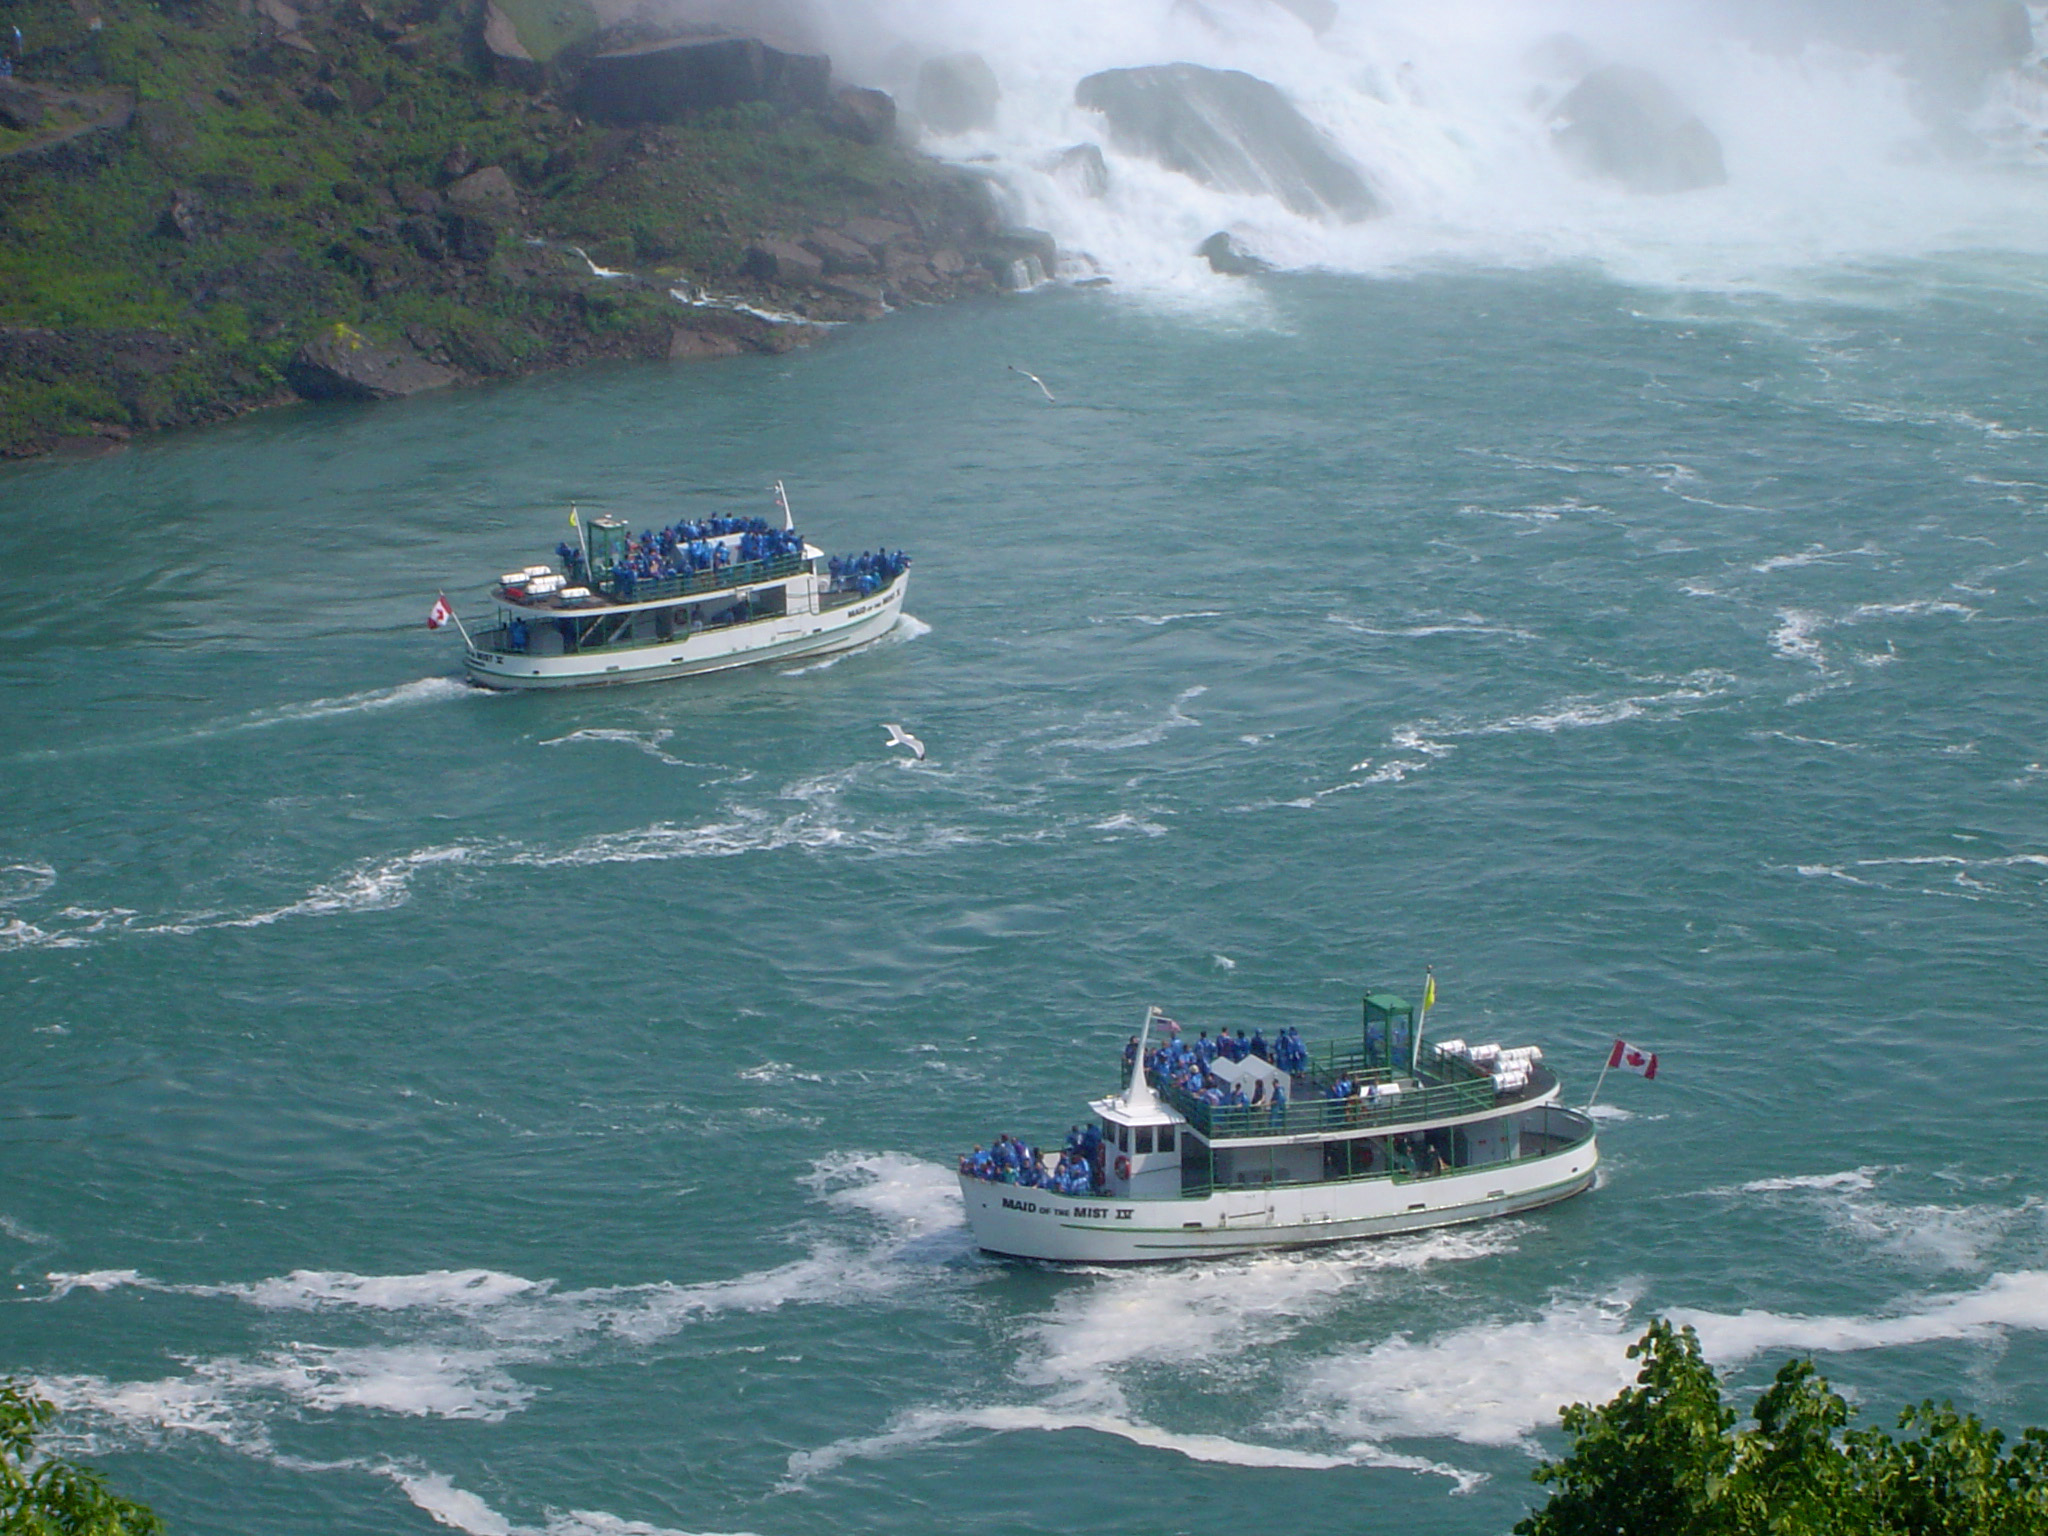 Tourist boats at the foot of the Maid of the Mist Niagara Falls between Canada and the USA with the spray from the waterfall visible in the background